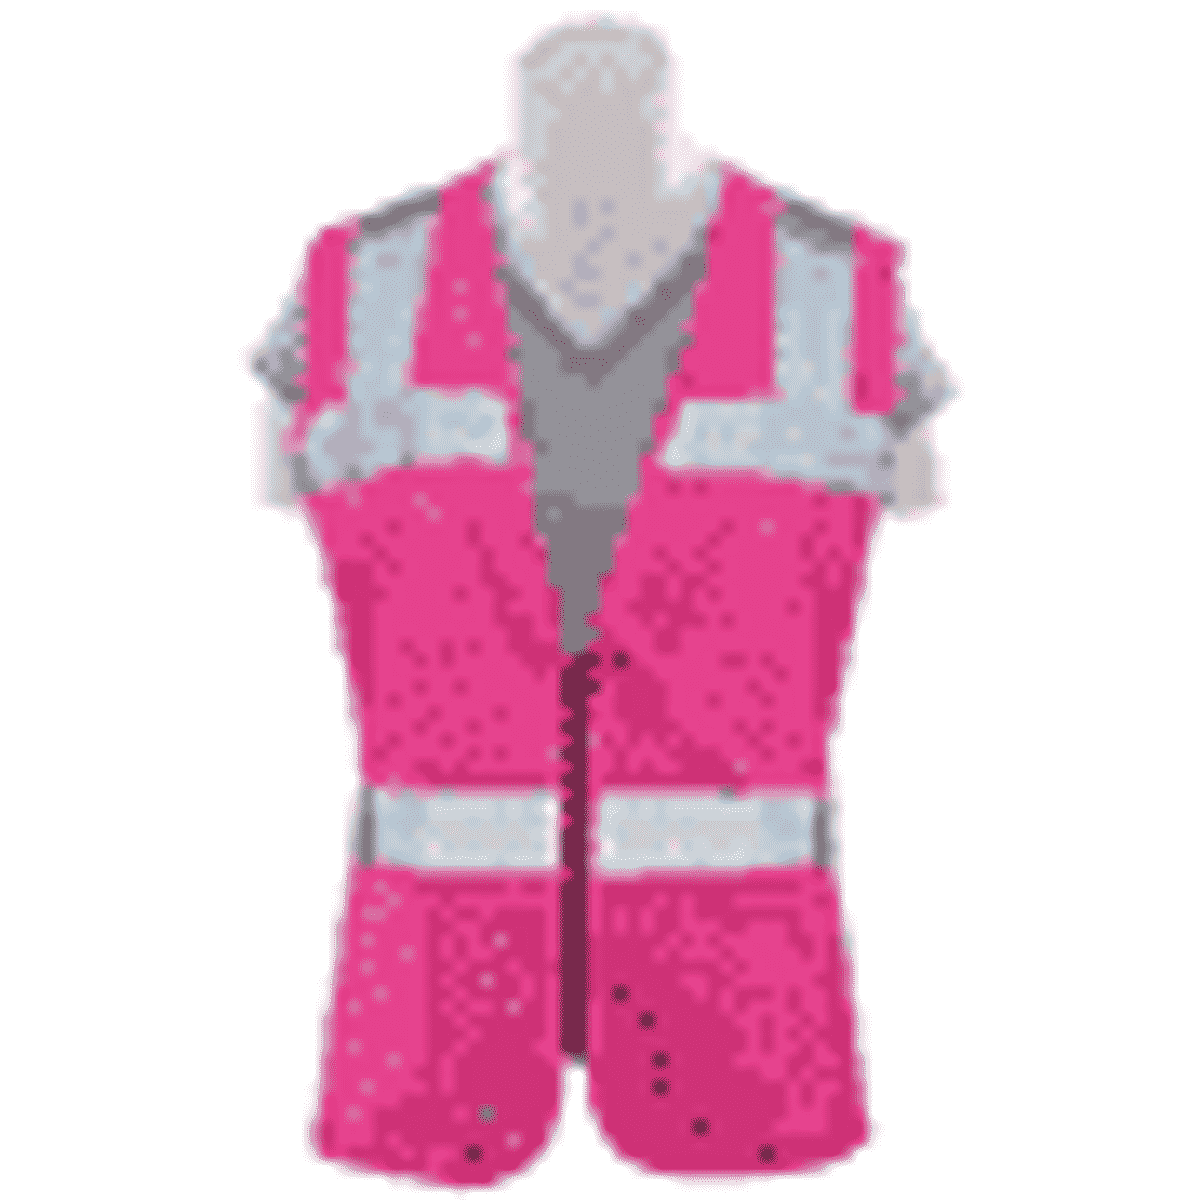 High-Vis Safety Vests